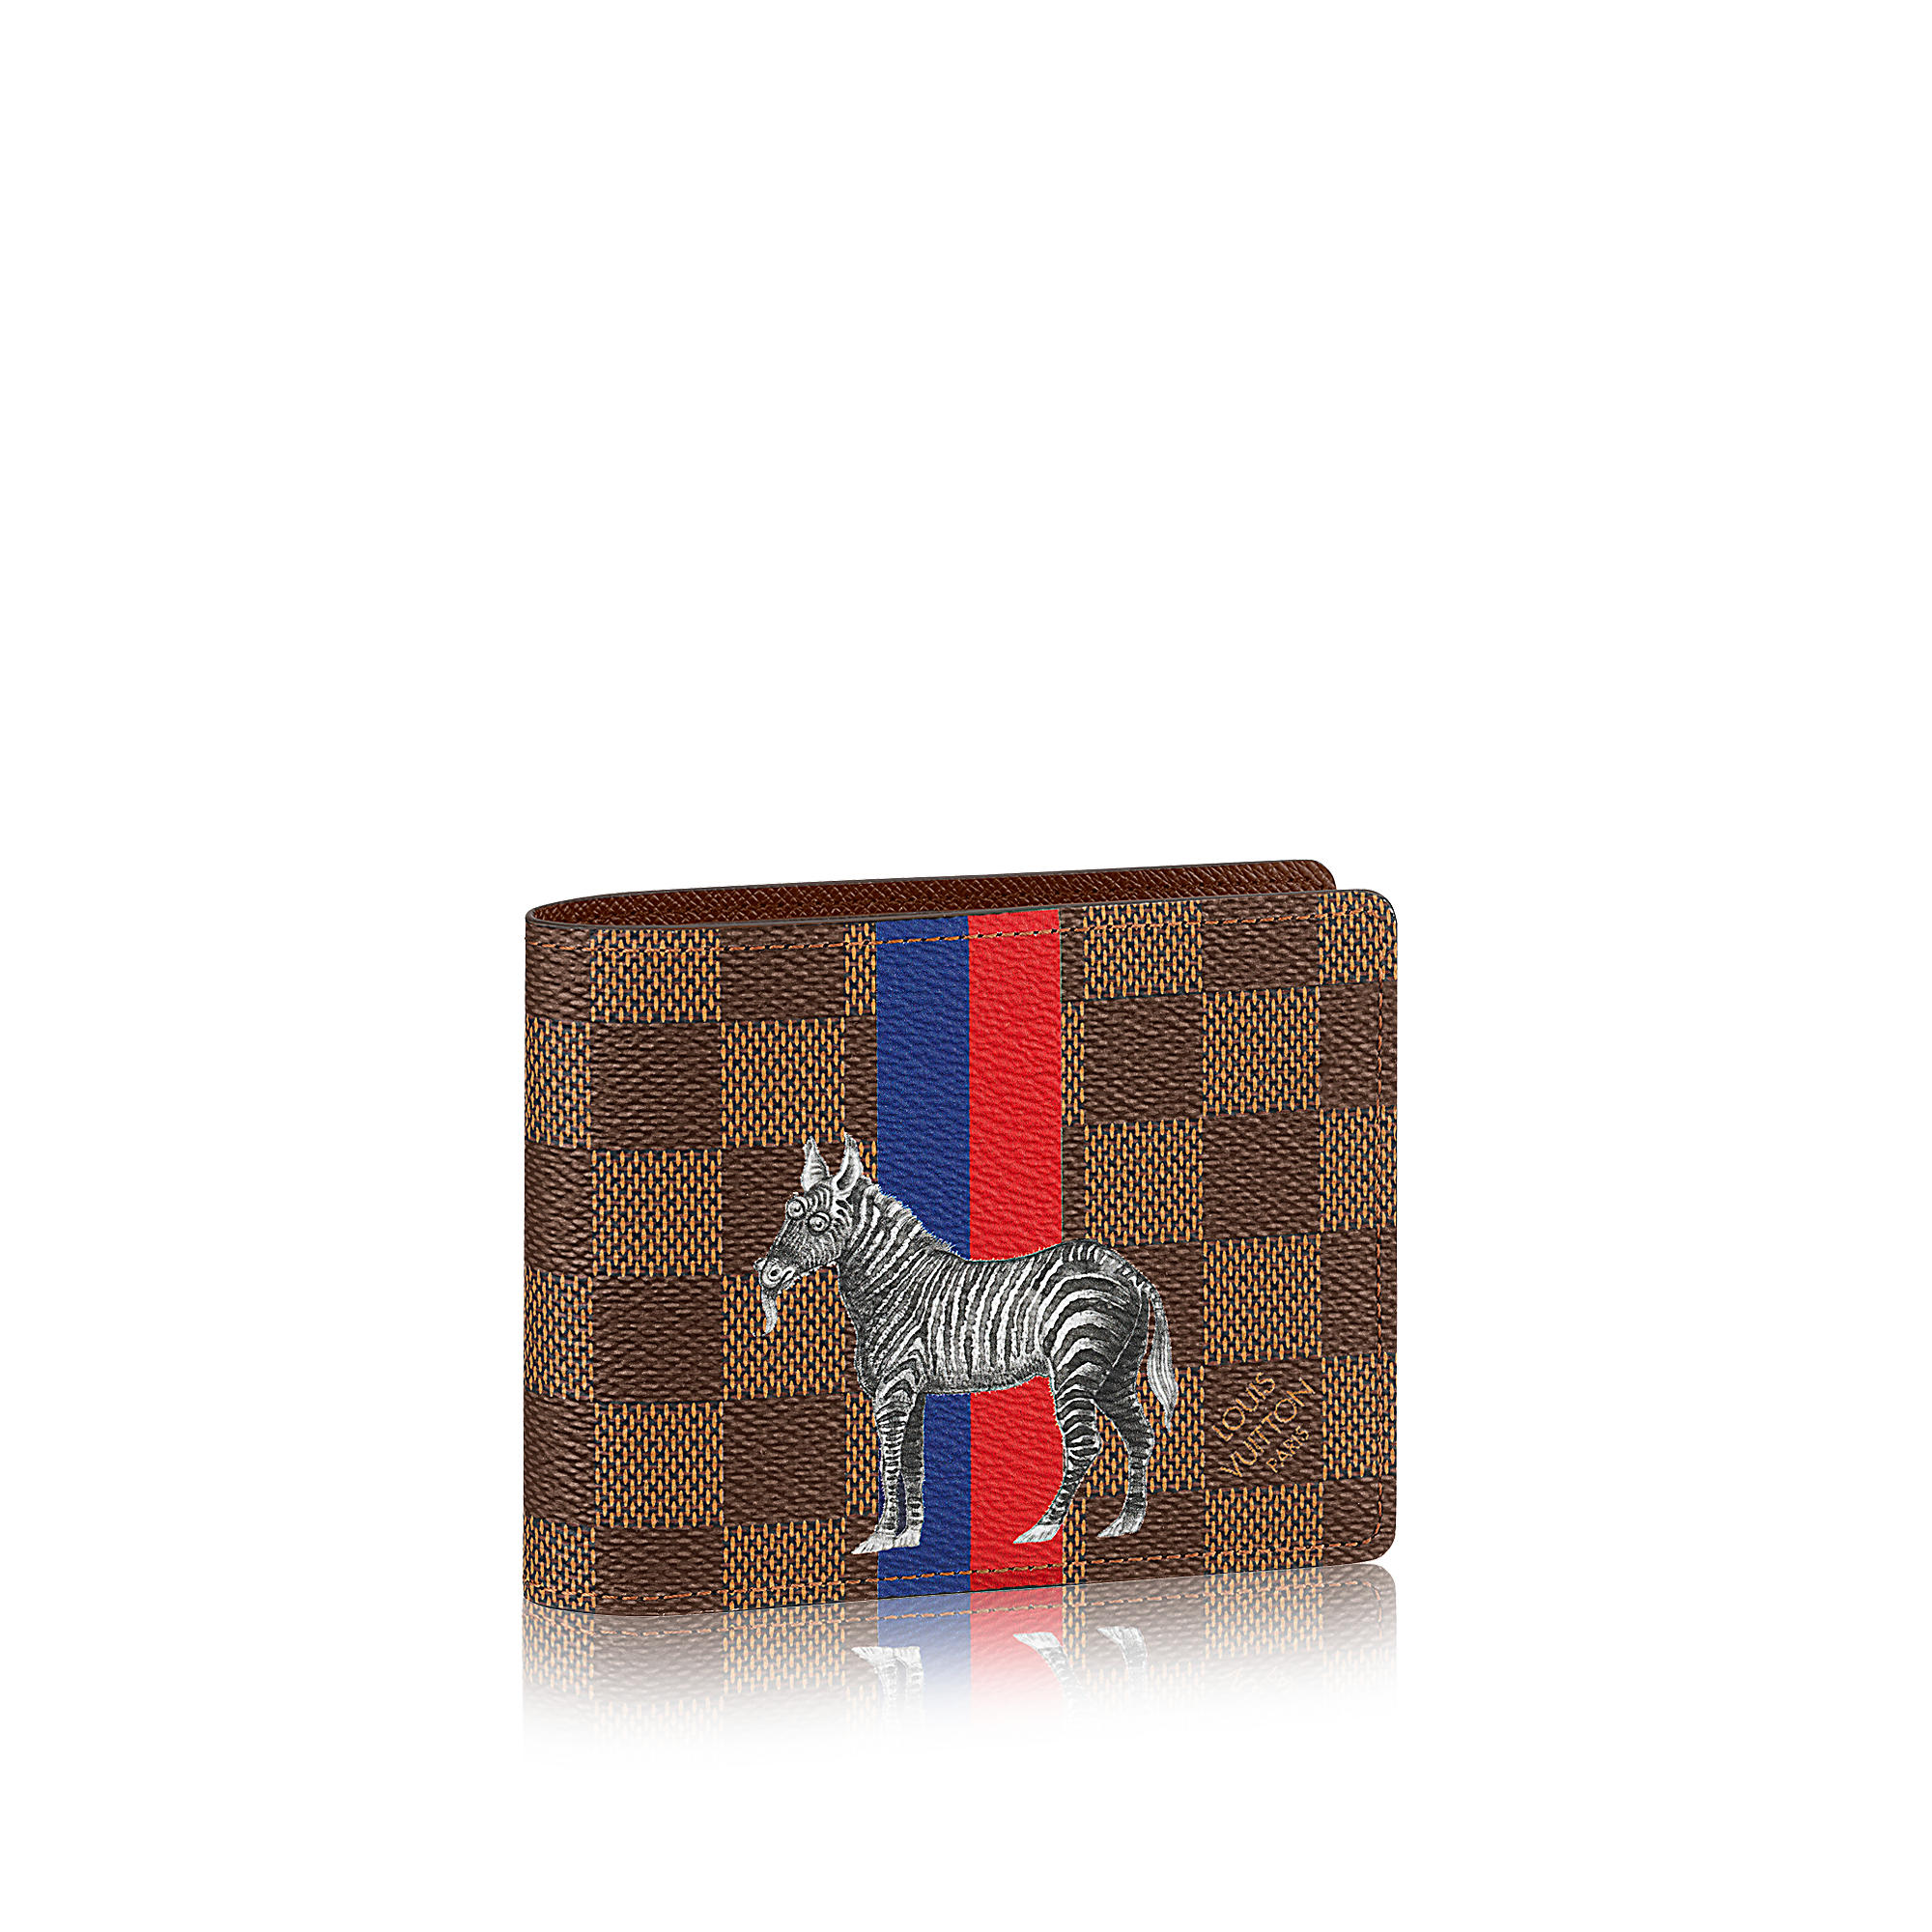 louis-vuitton-multiple-wallet-damier-ebene-canvas-key-and-card-holders-n63343_pm2_front-view